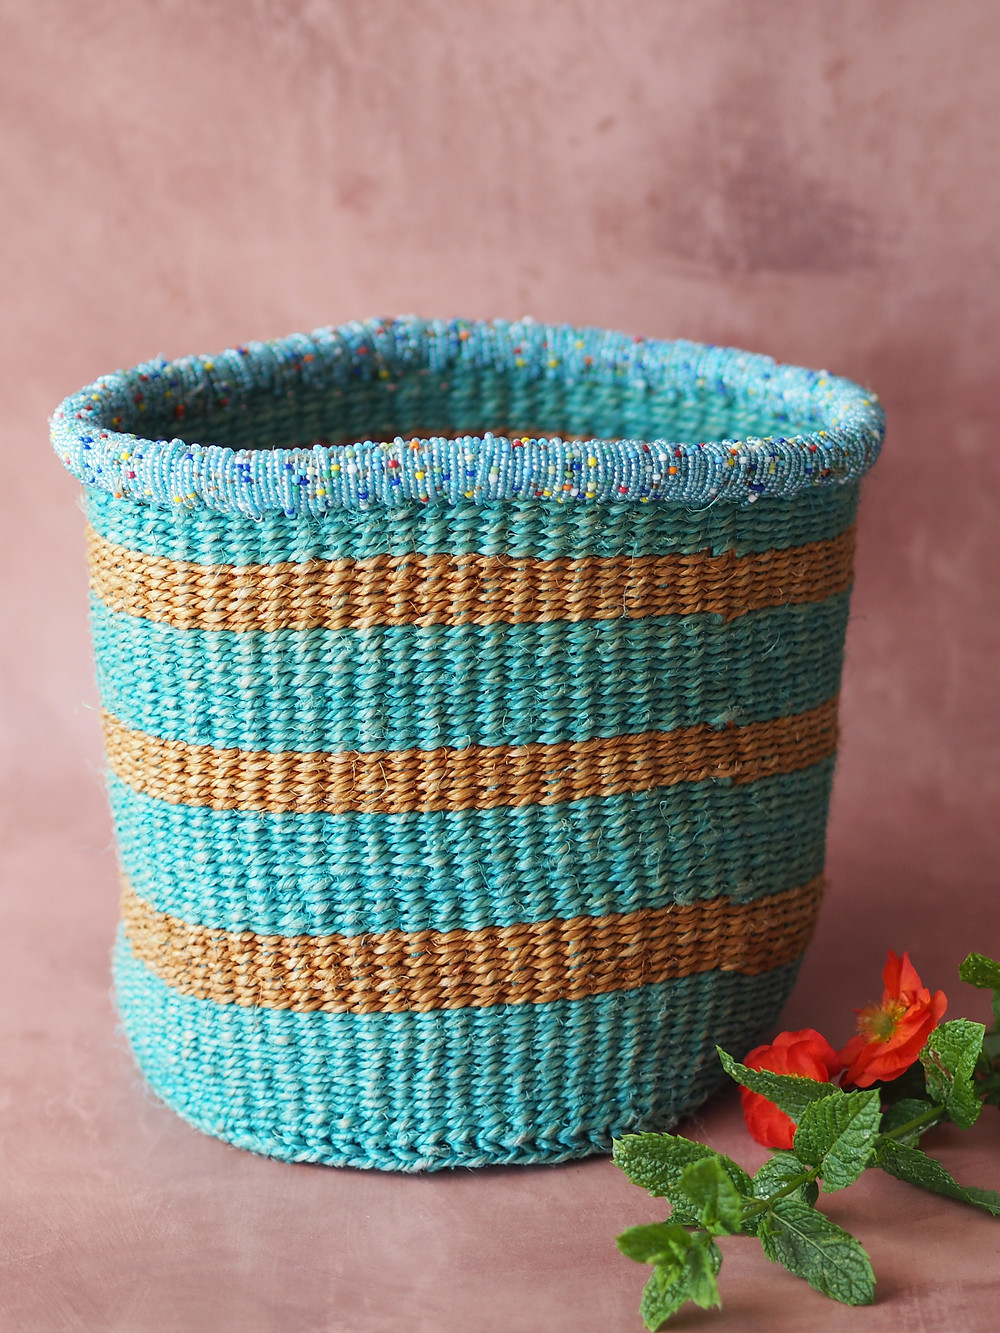 turquoise and ocre striped basket